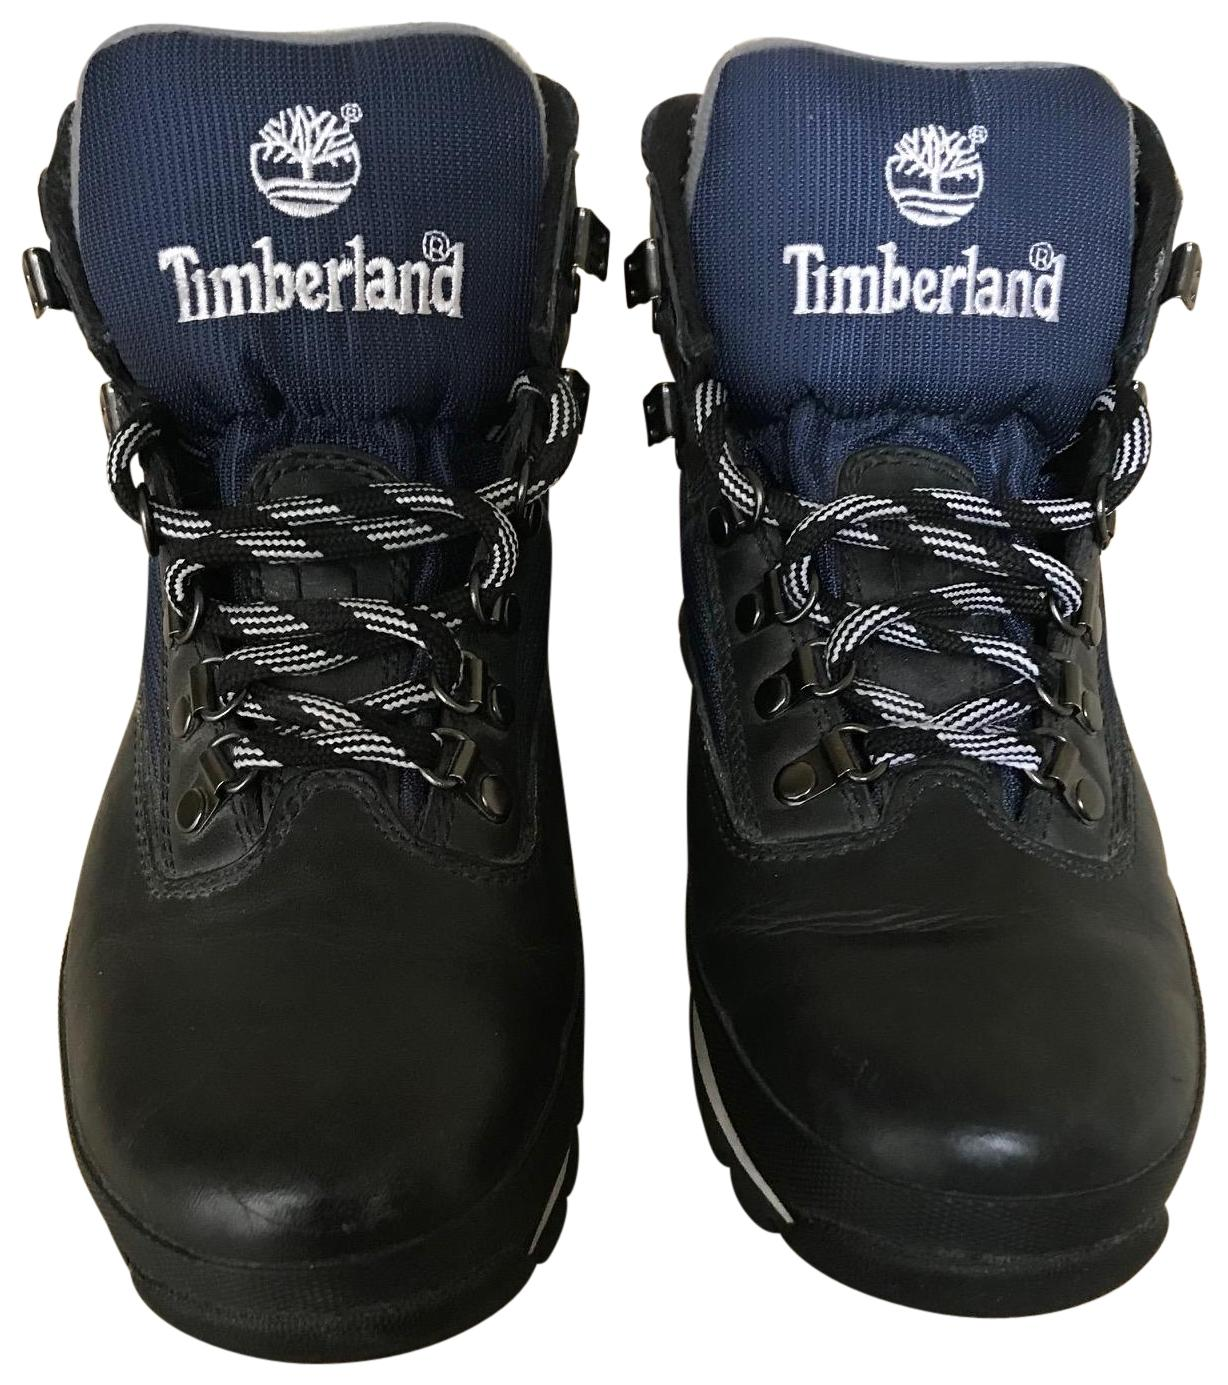 248caa76702 Tradesy Up Boots Black Booties To At Timberland Off 90 amp  R4PqPf